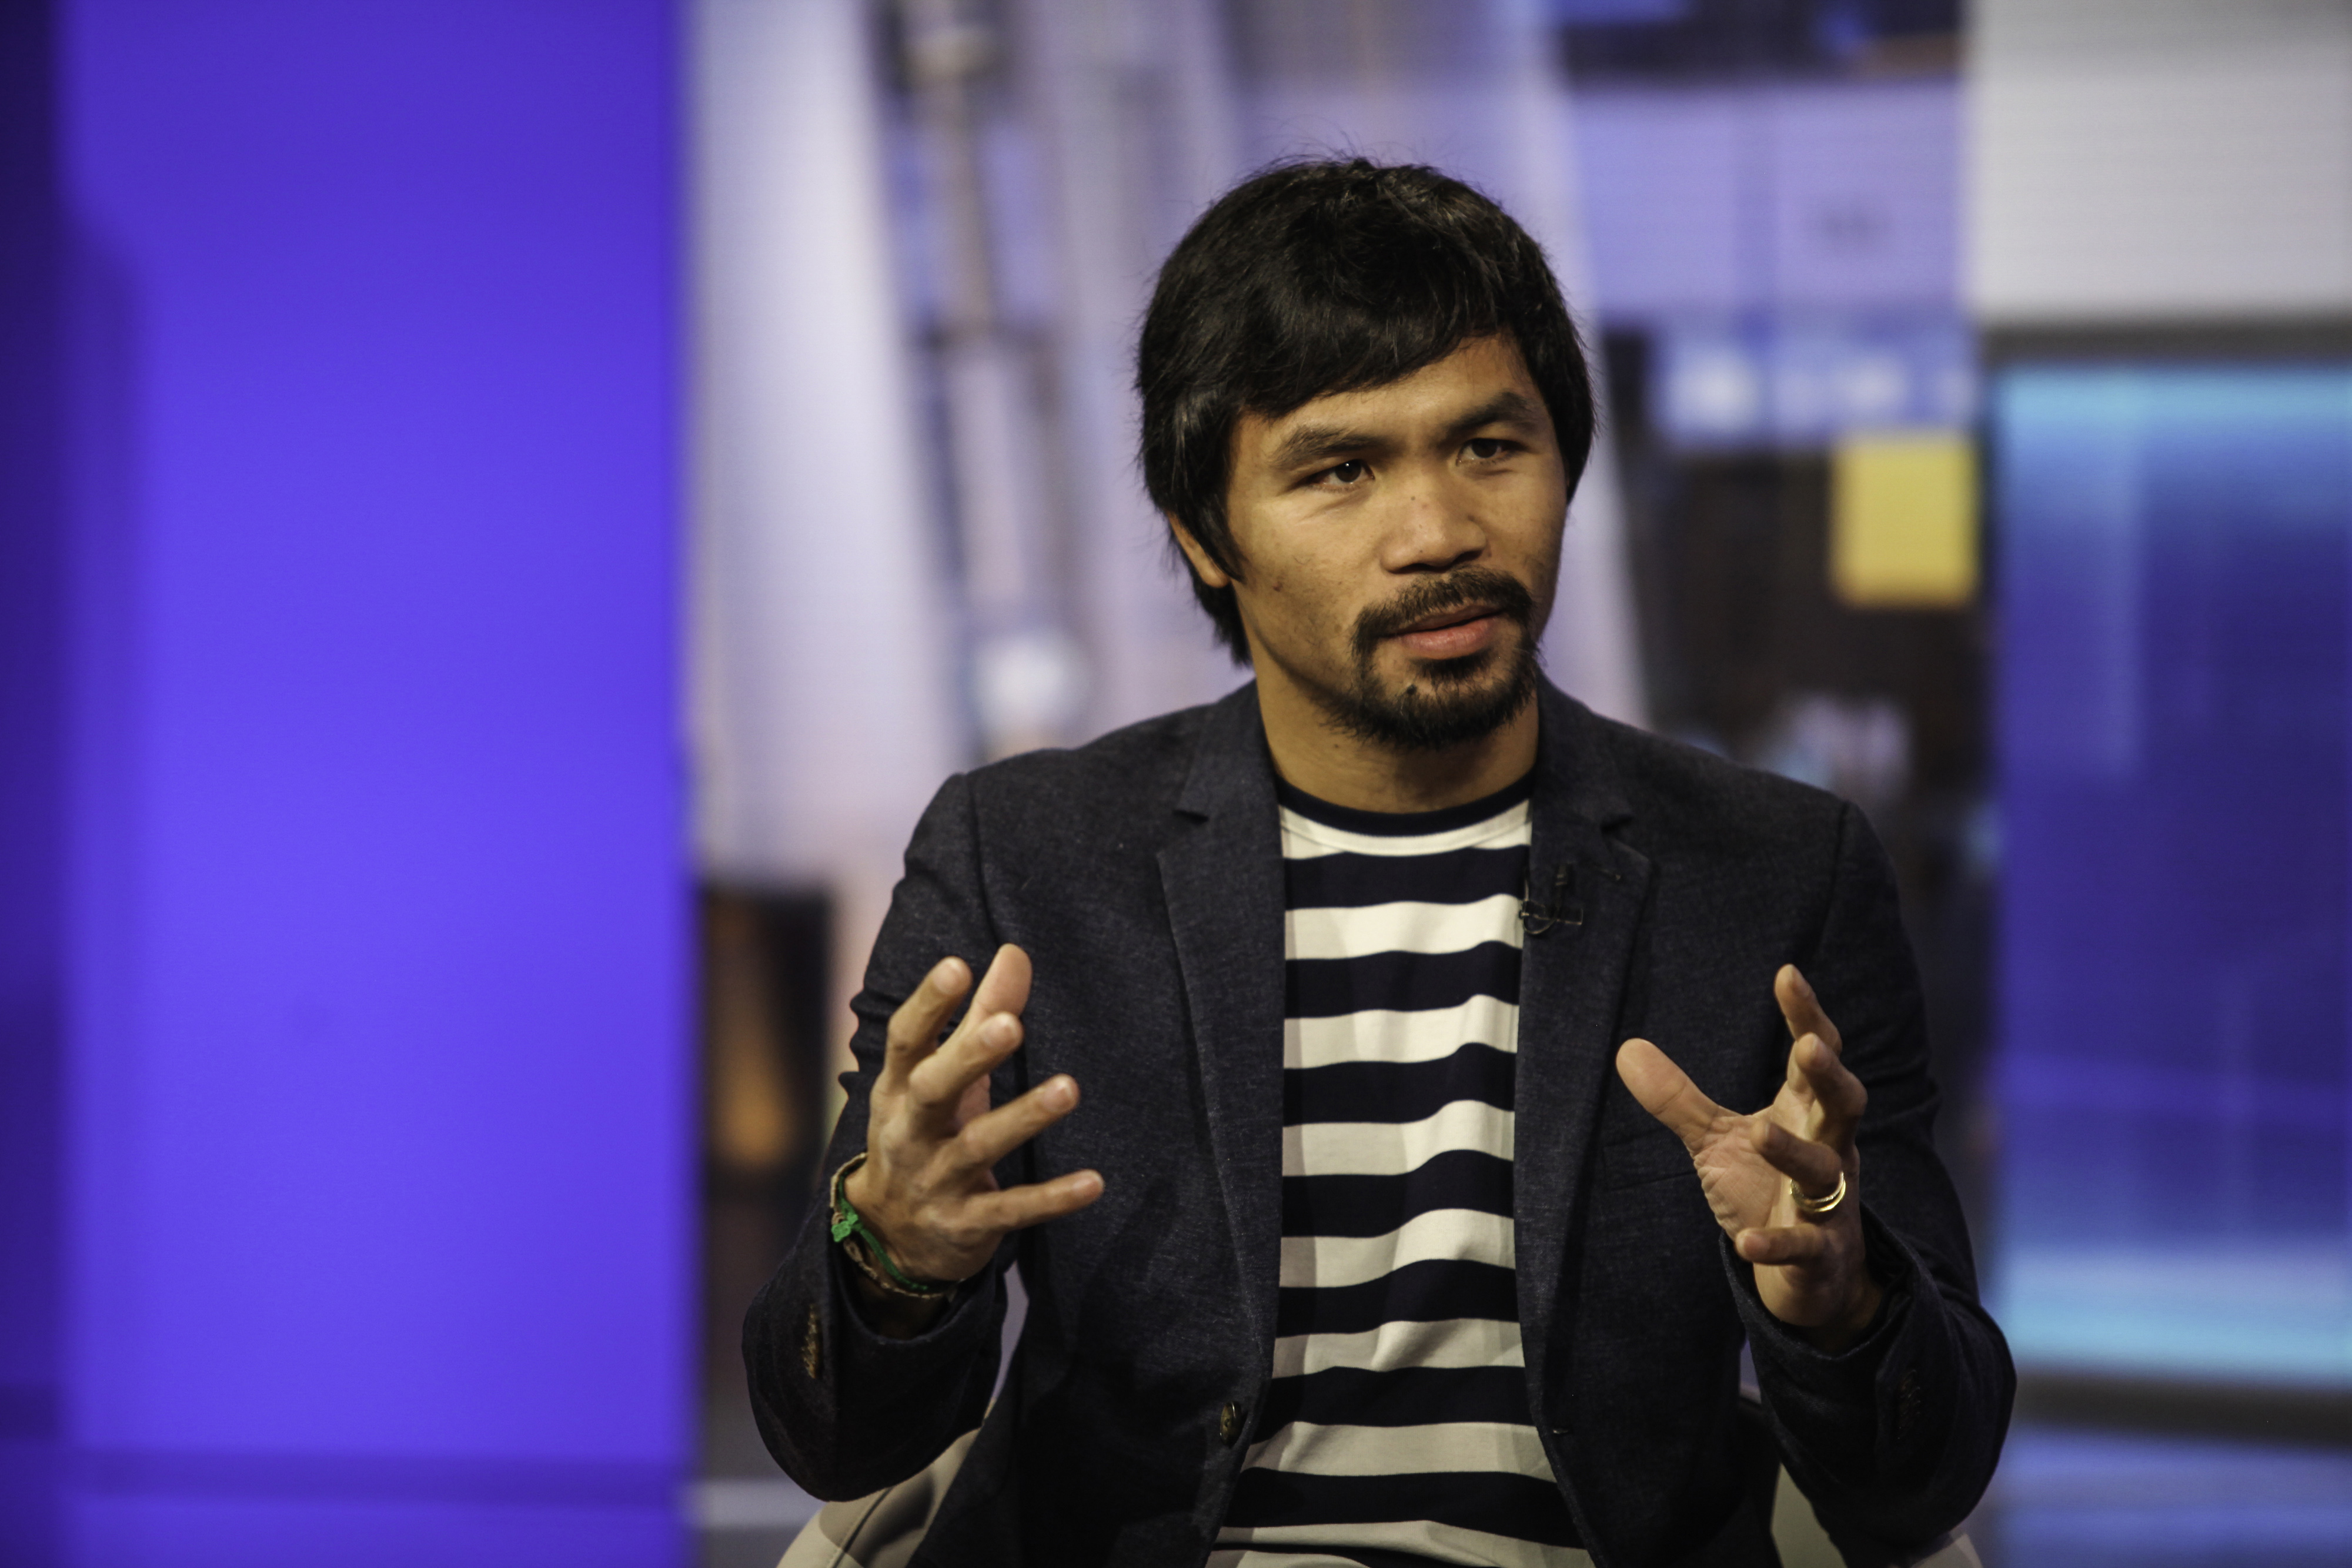 Professional boxer Manny Pacquiao speaks during a Bloomberg Television interview in New York, U.S., on Tuesday, Oct. 13, 2015.